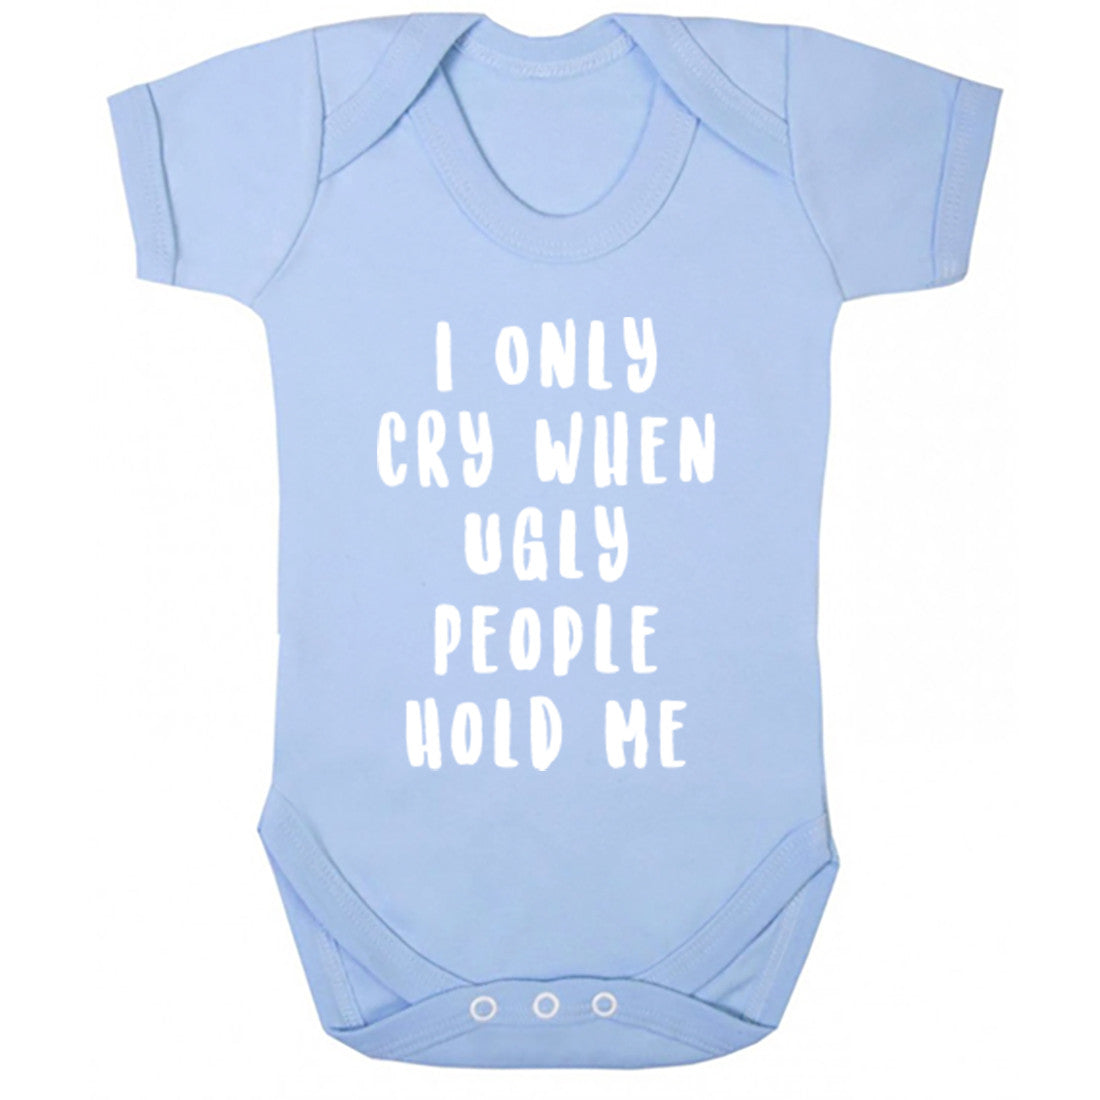 I Only Cry When Ugly People Hold Me Baby Vest K1215 - Illustrated Identity Ltd.